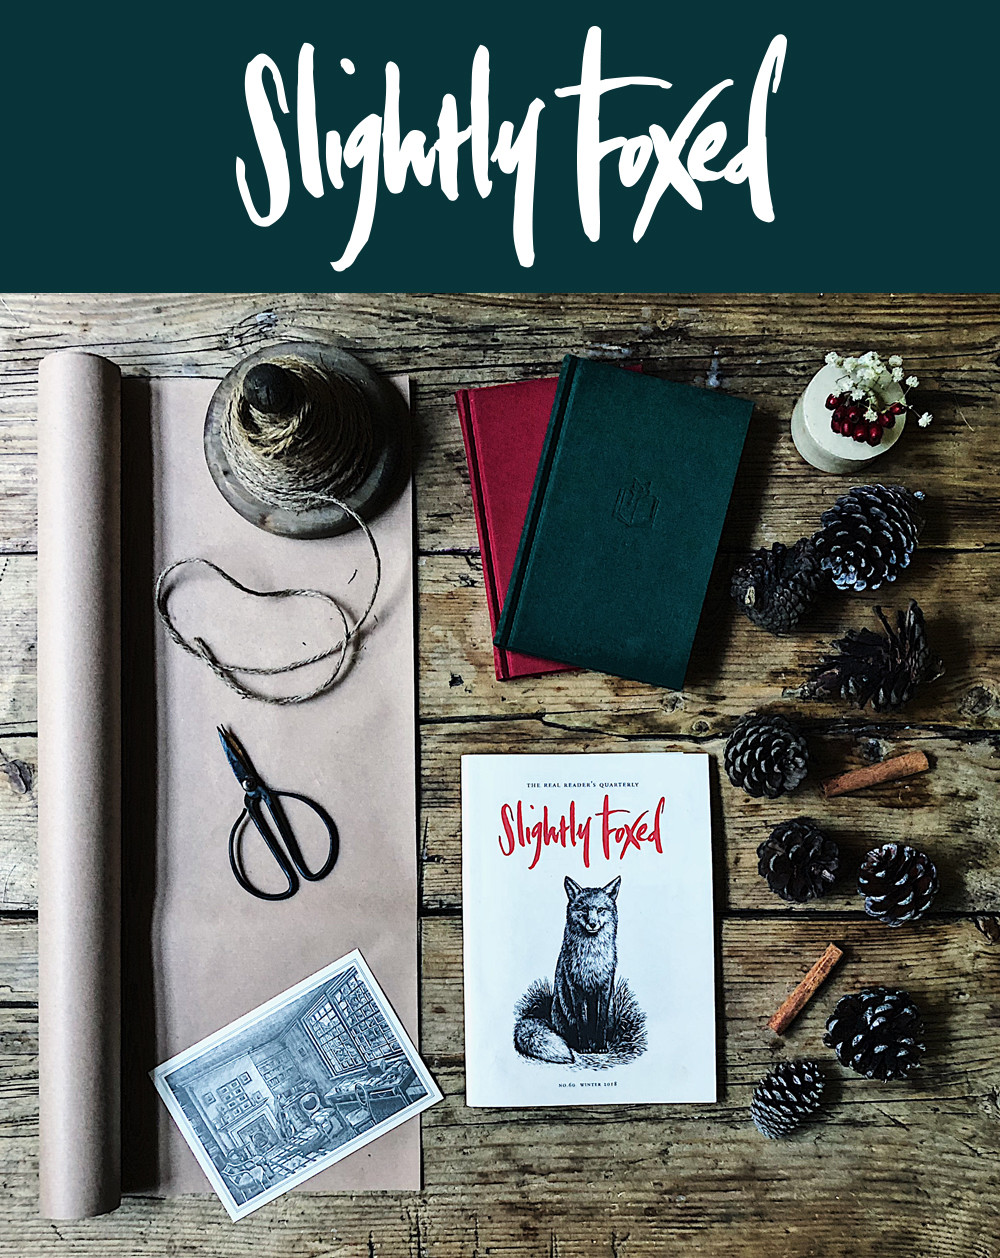 Slightly Foxed November News: The gift of beautifully packaged good reading - Christmas presents